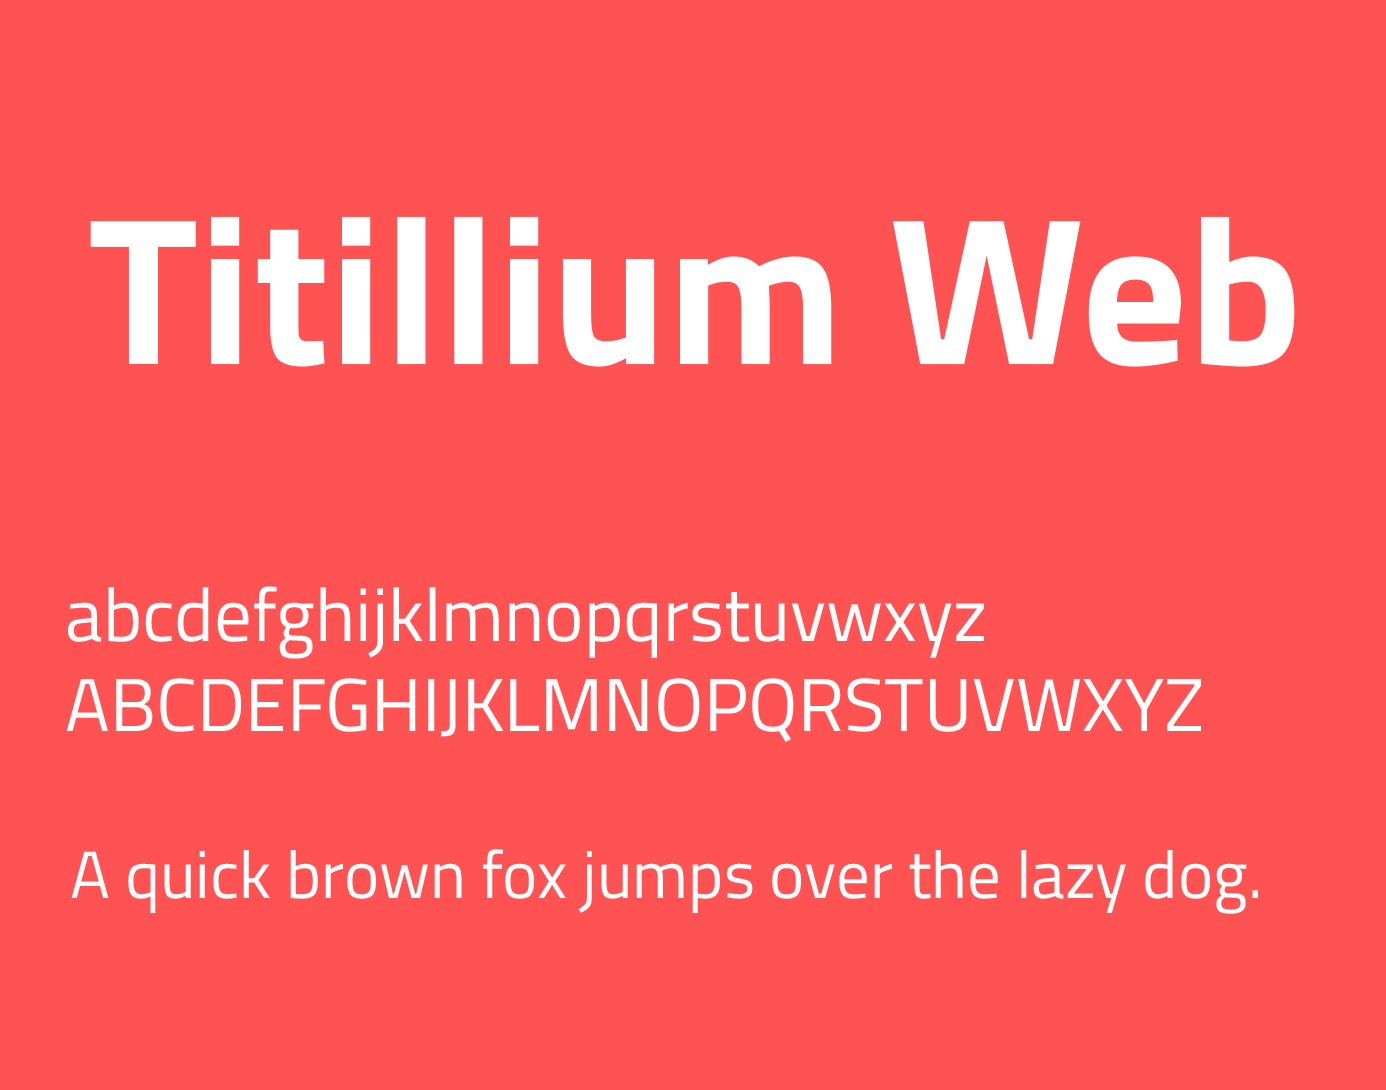 Titillium Web Font Free Download | Collection Chumbart™ | font